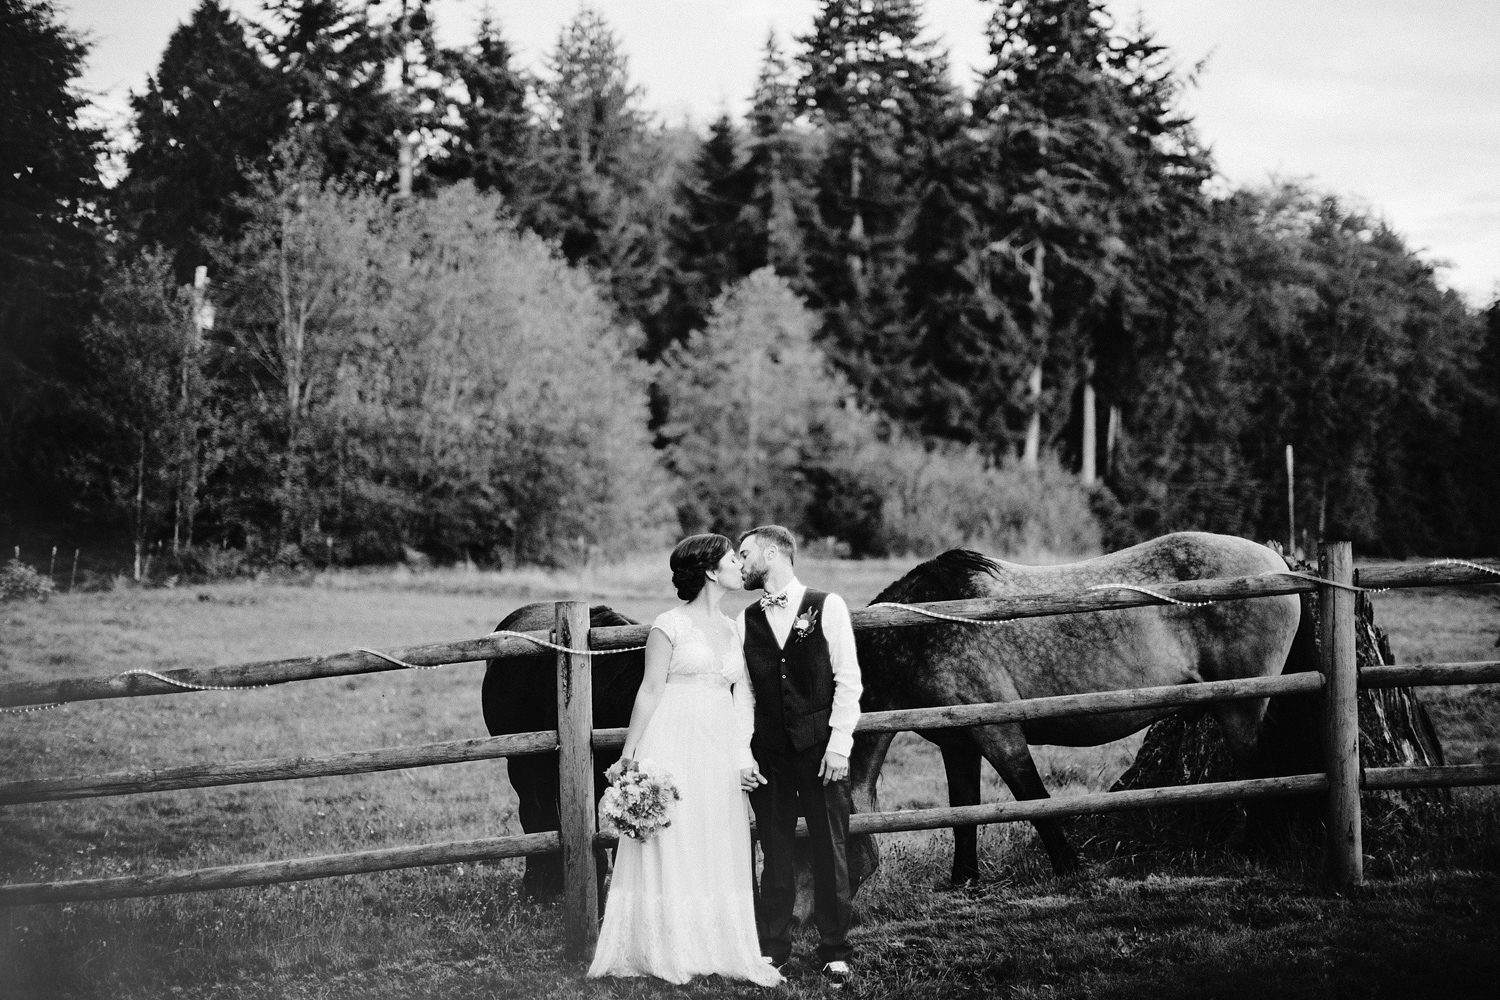 jmblog-farm-kitchen-wedding-seattle-film-ryan-flynn-0035.JPG